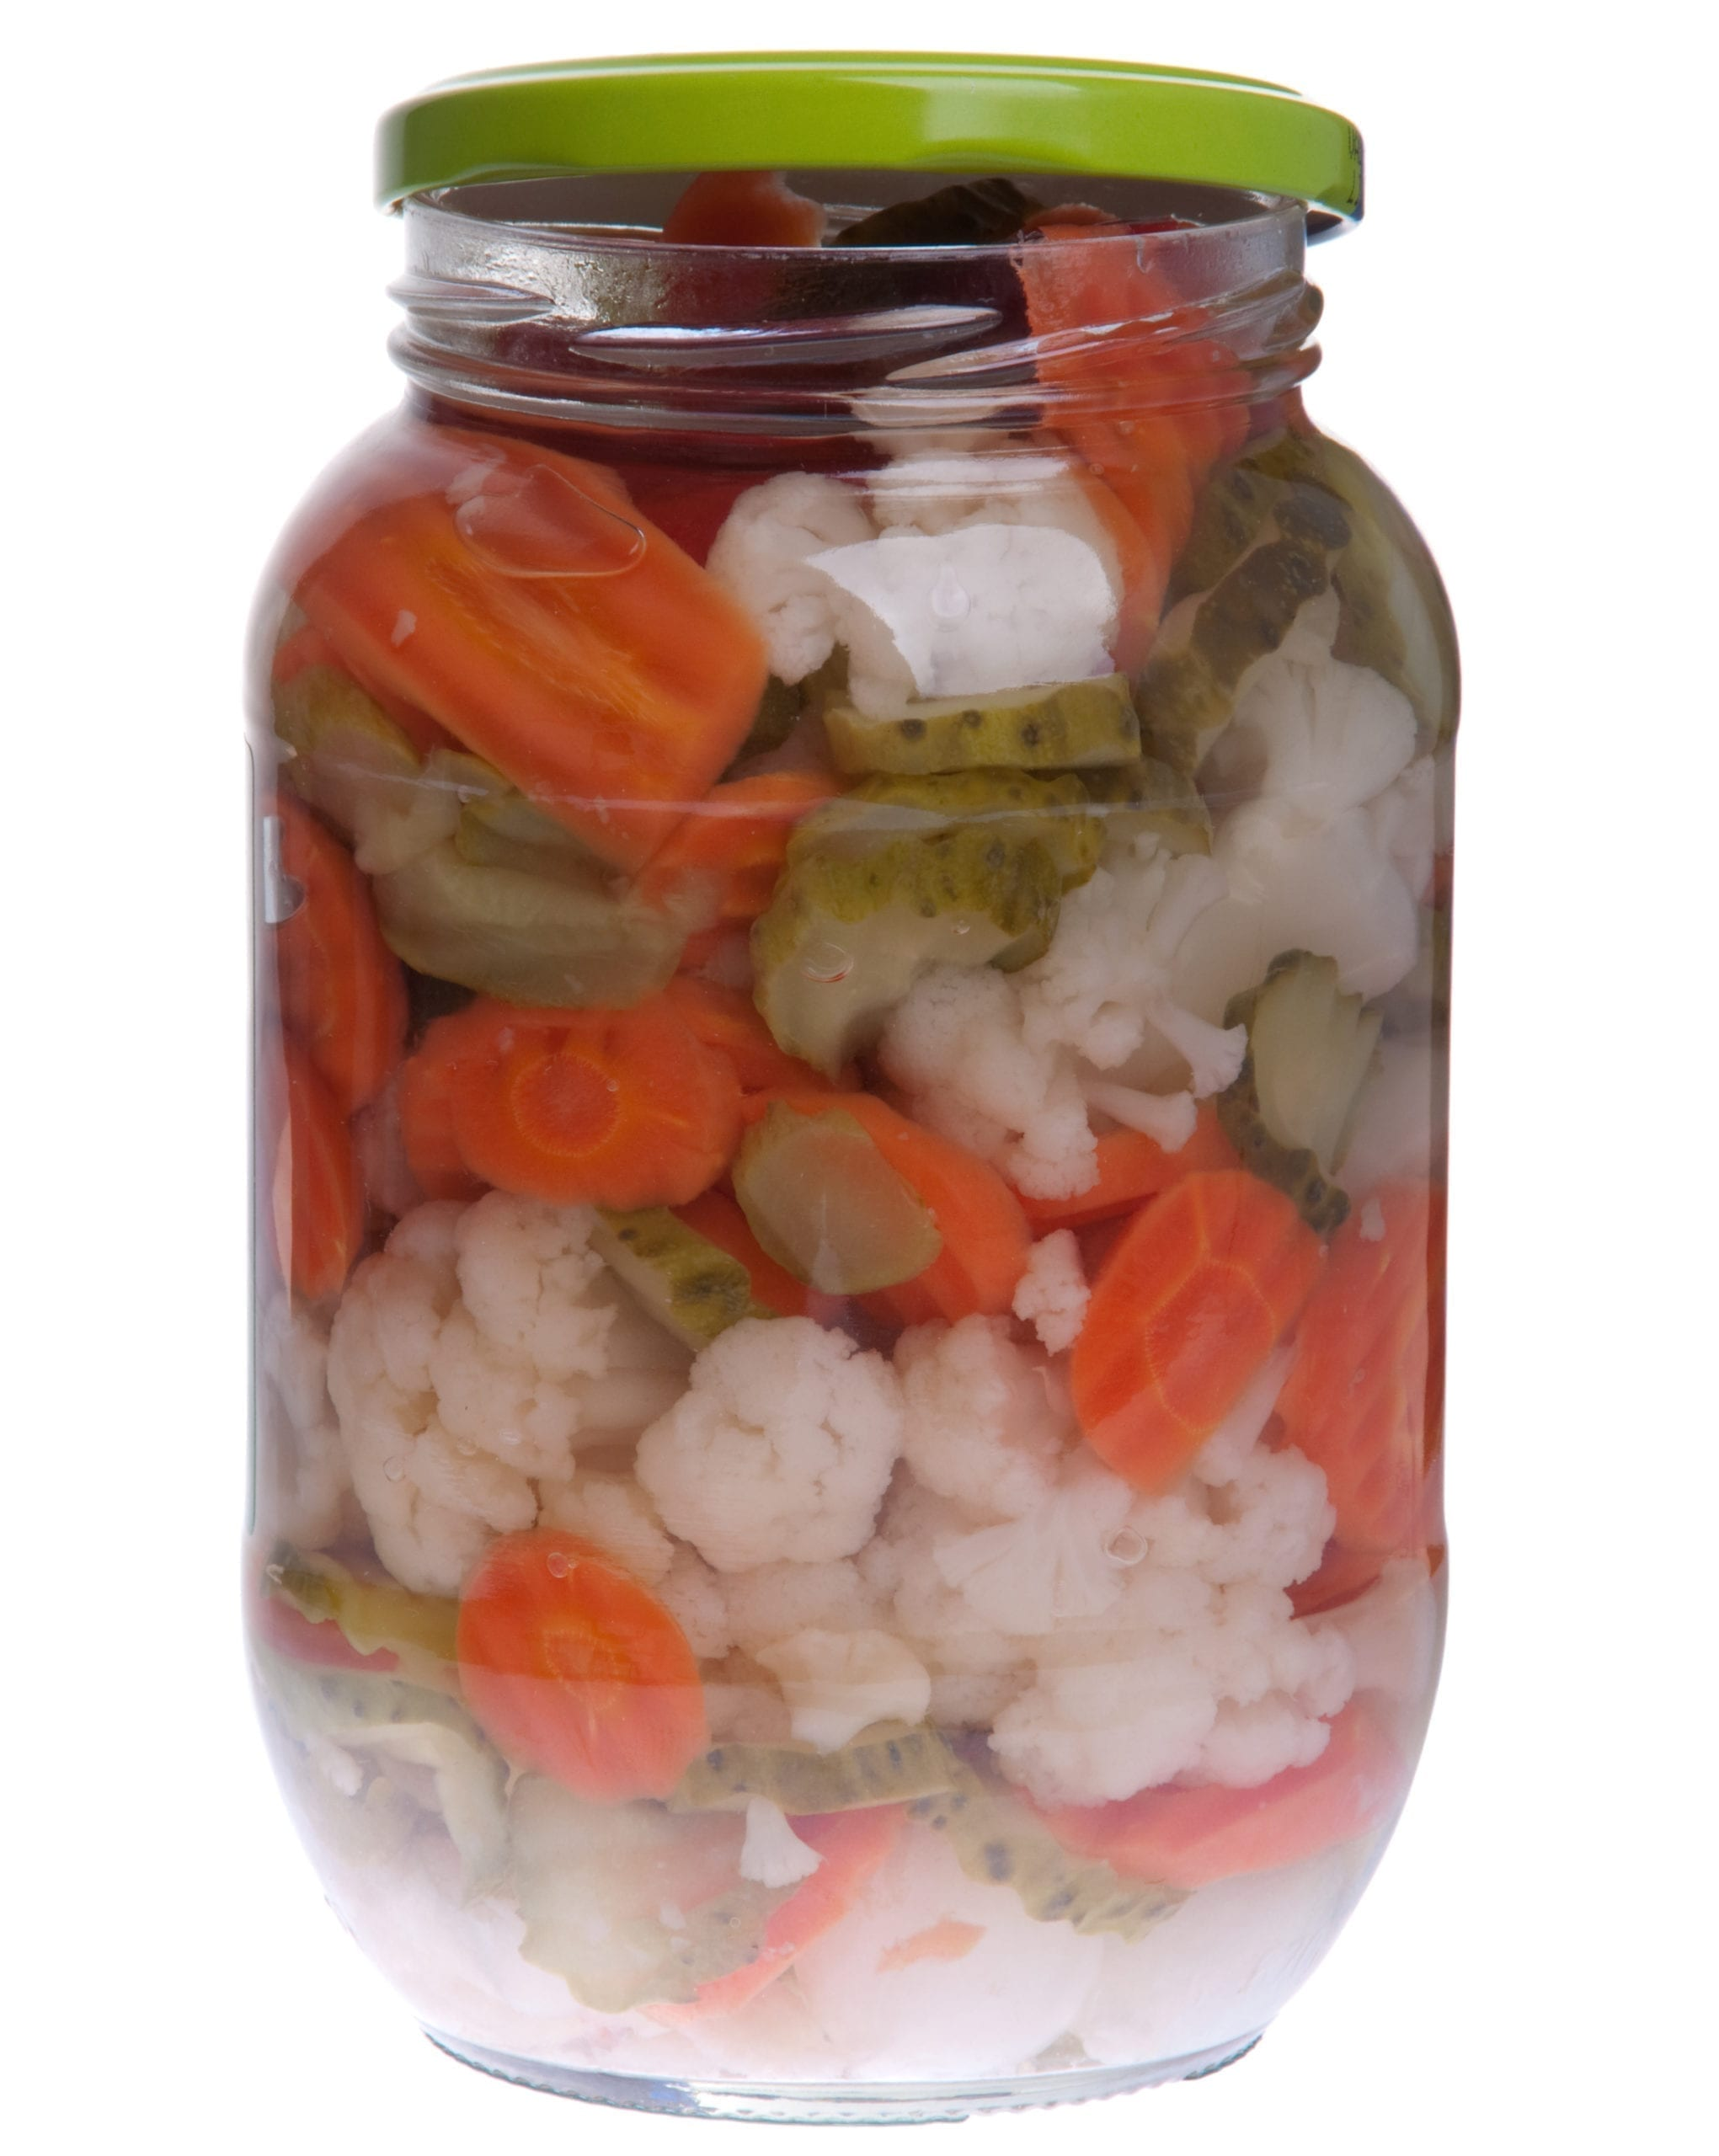 Pickels jar